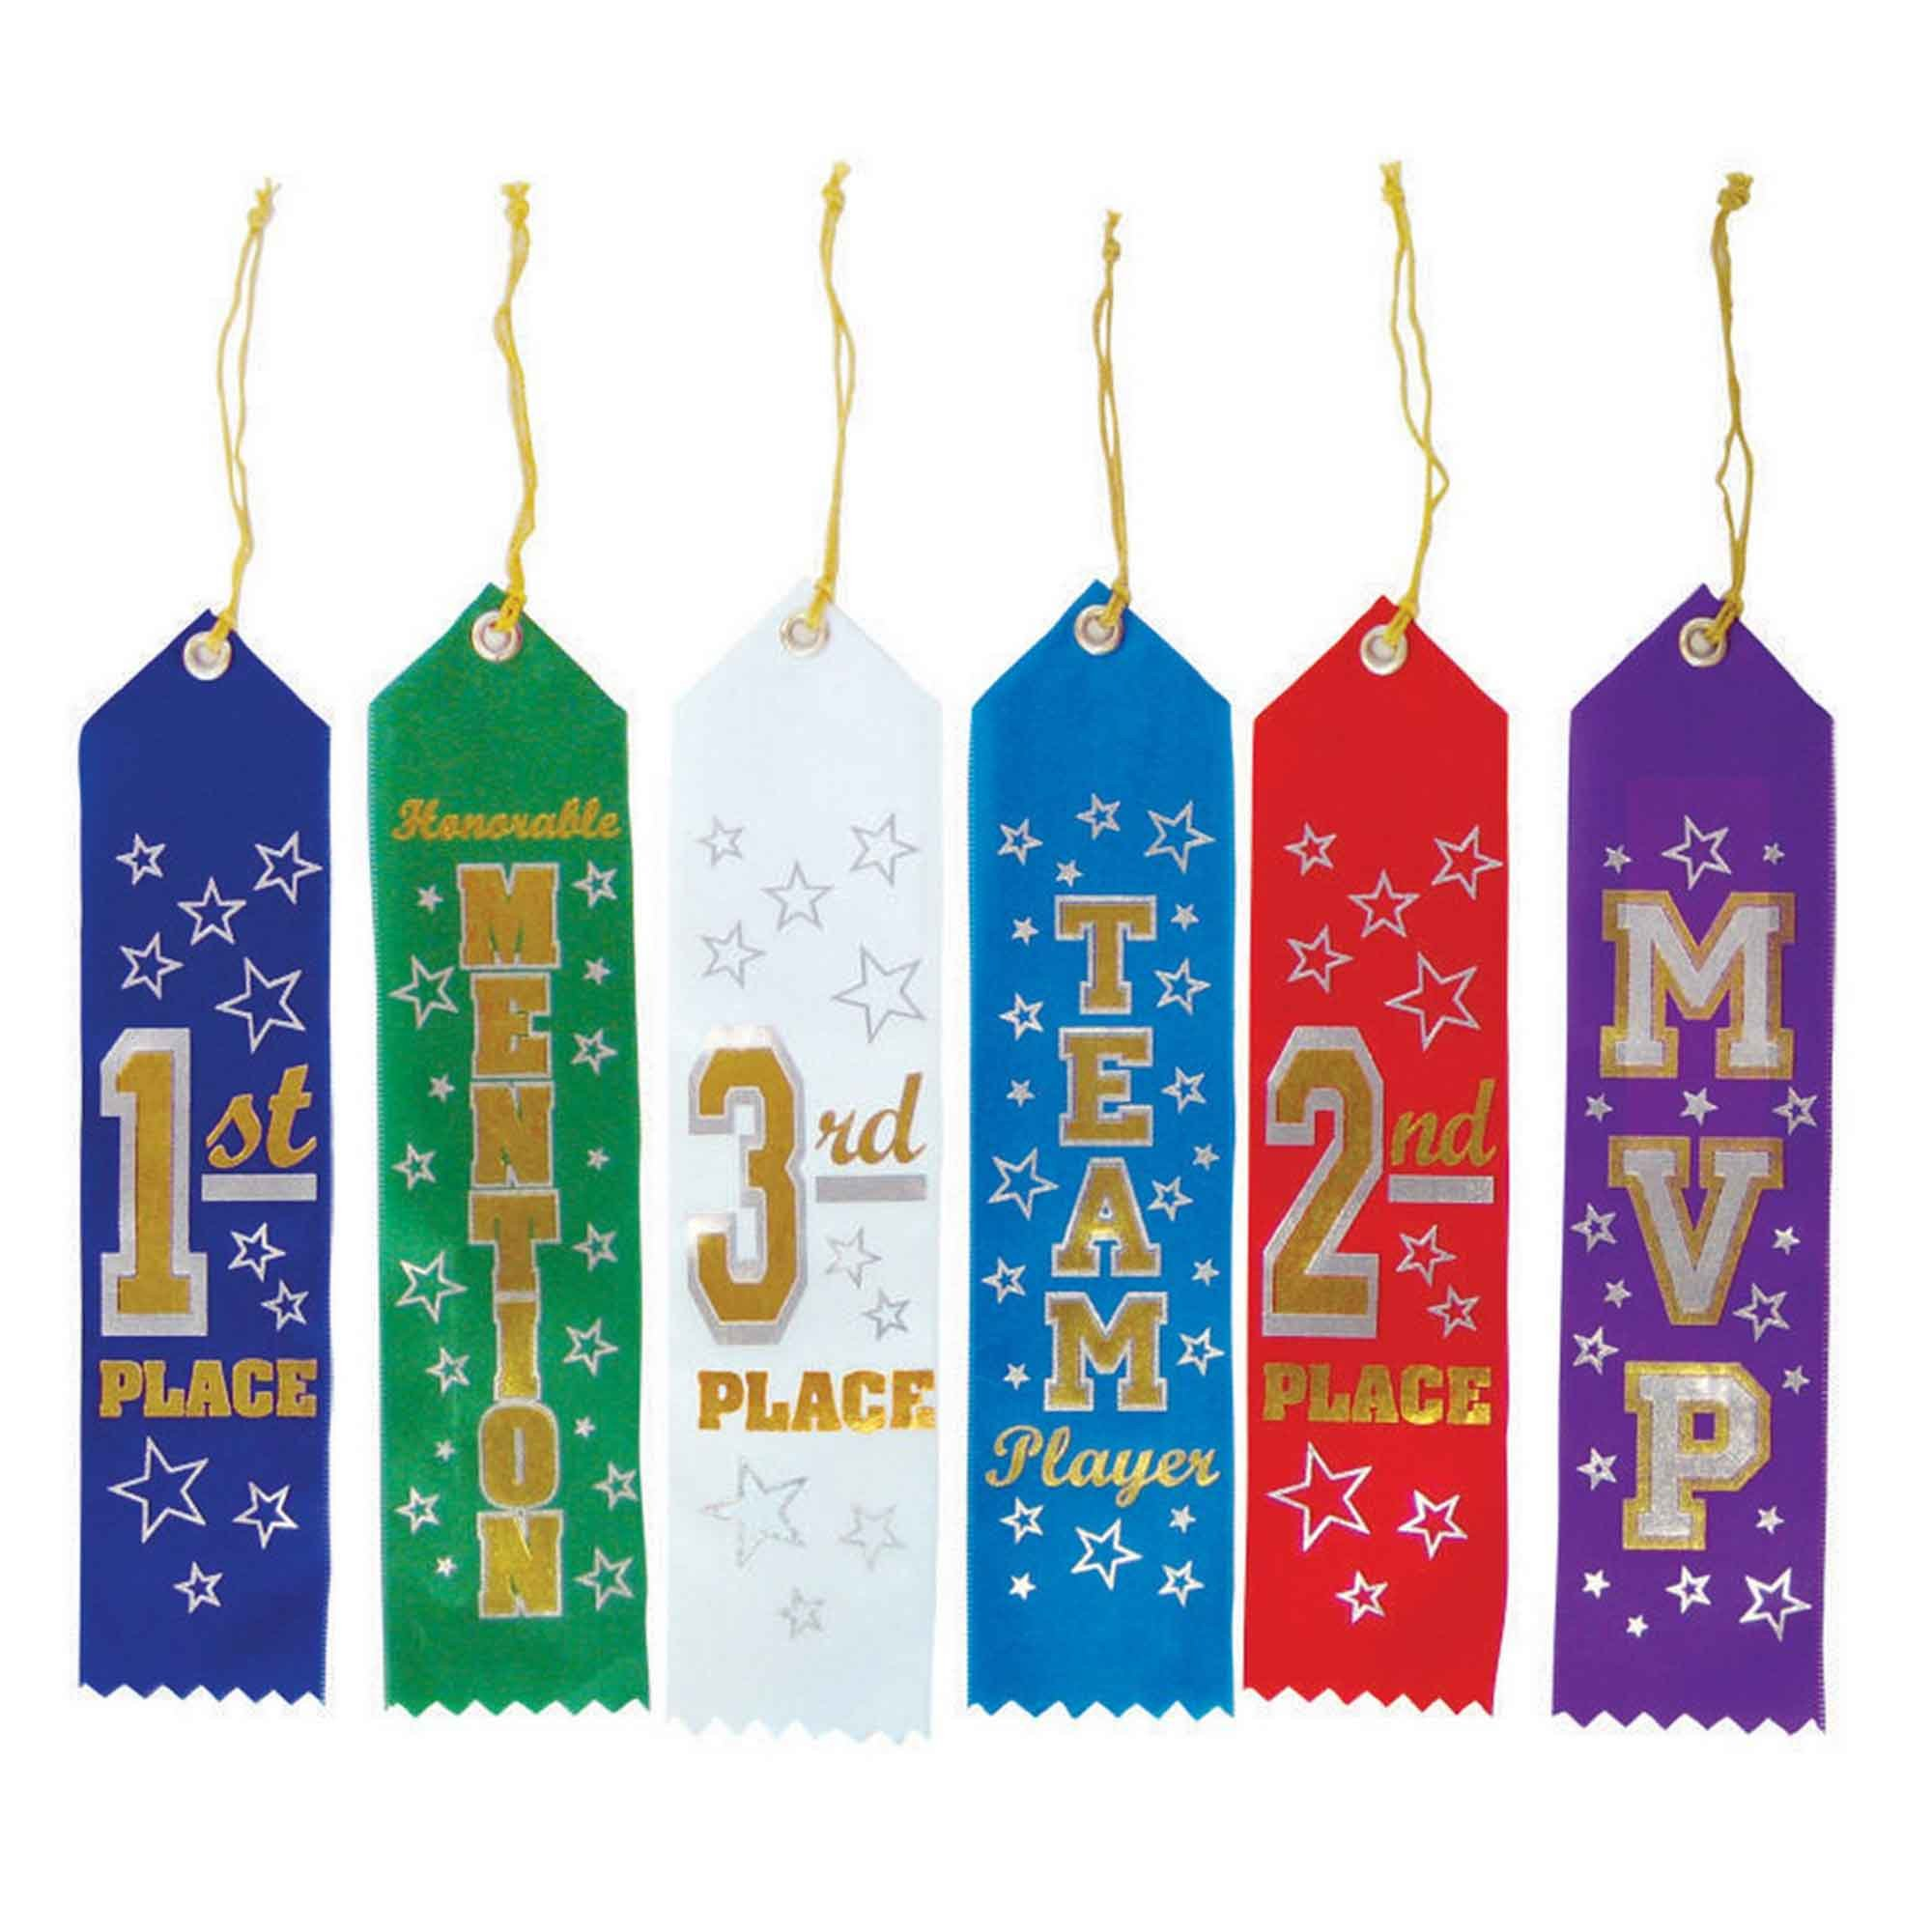 Recognition Ribbons